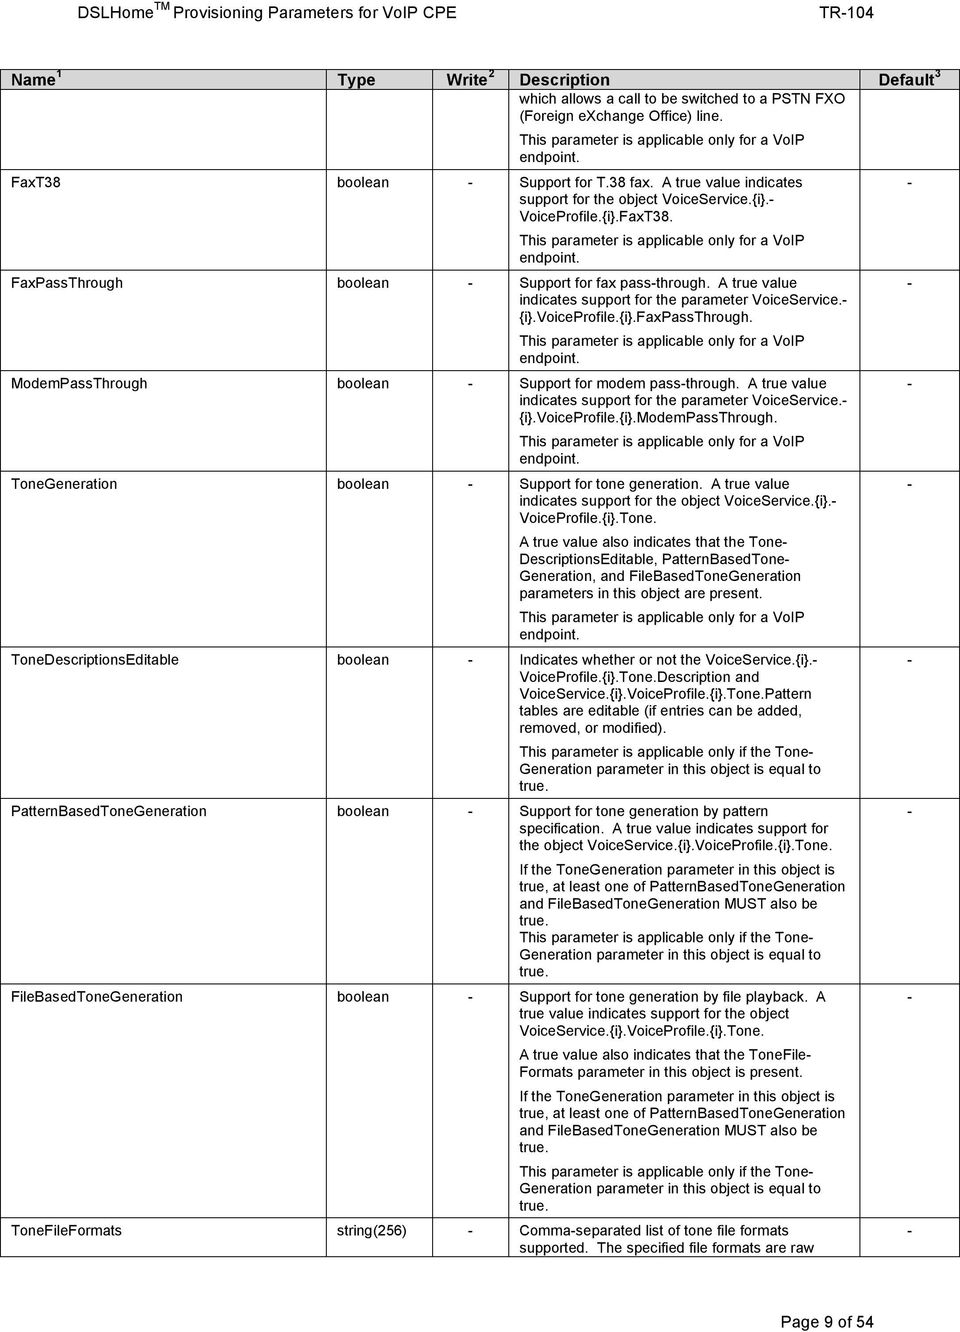 FaxPassThrough boolean Support for fax passthrough. A true value indicates support for the parameter VoiceService. {i}.voiceprofile.{i}.faxpassthrough.